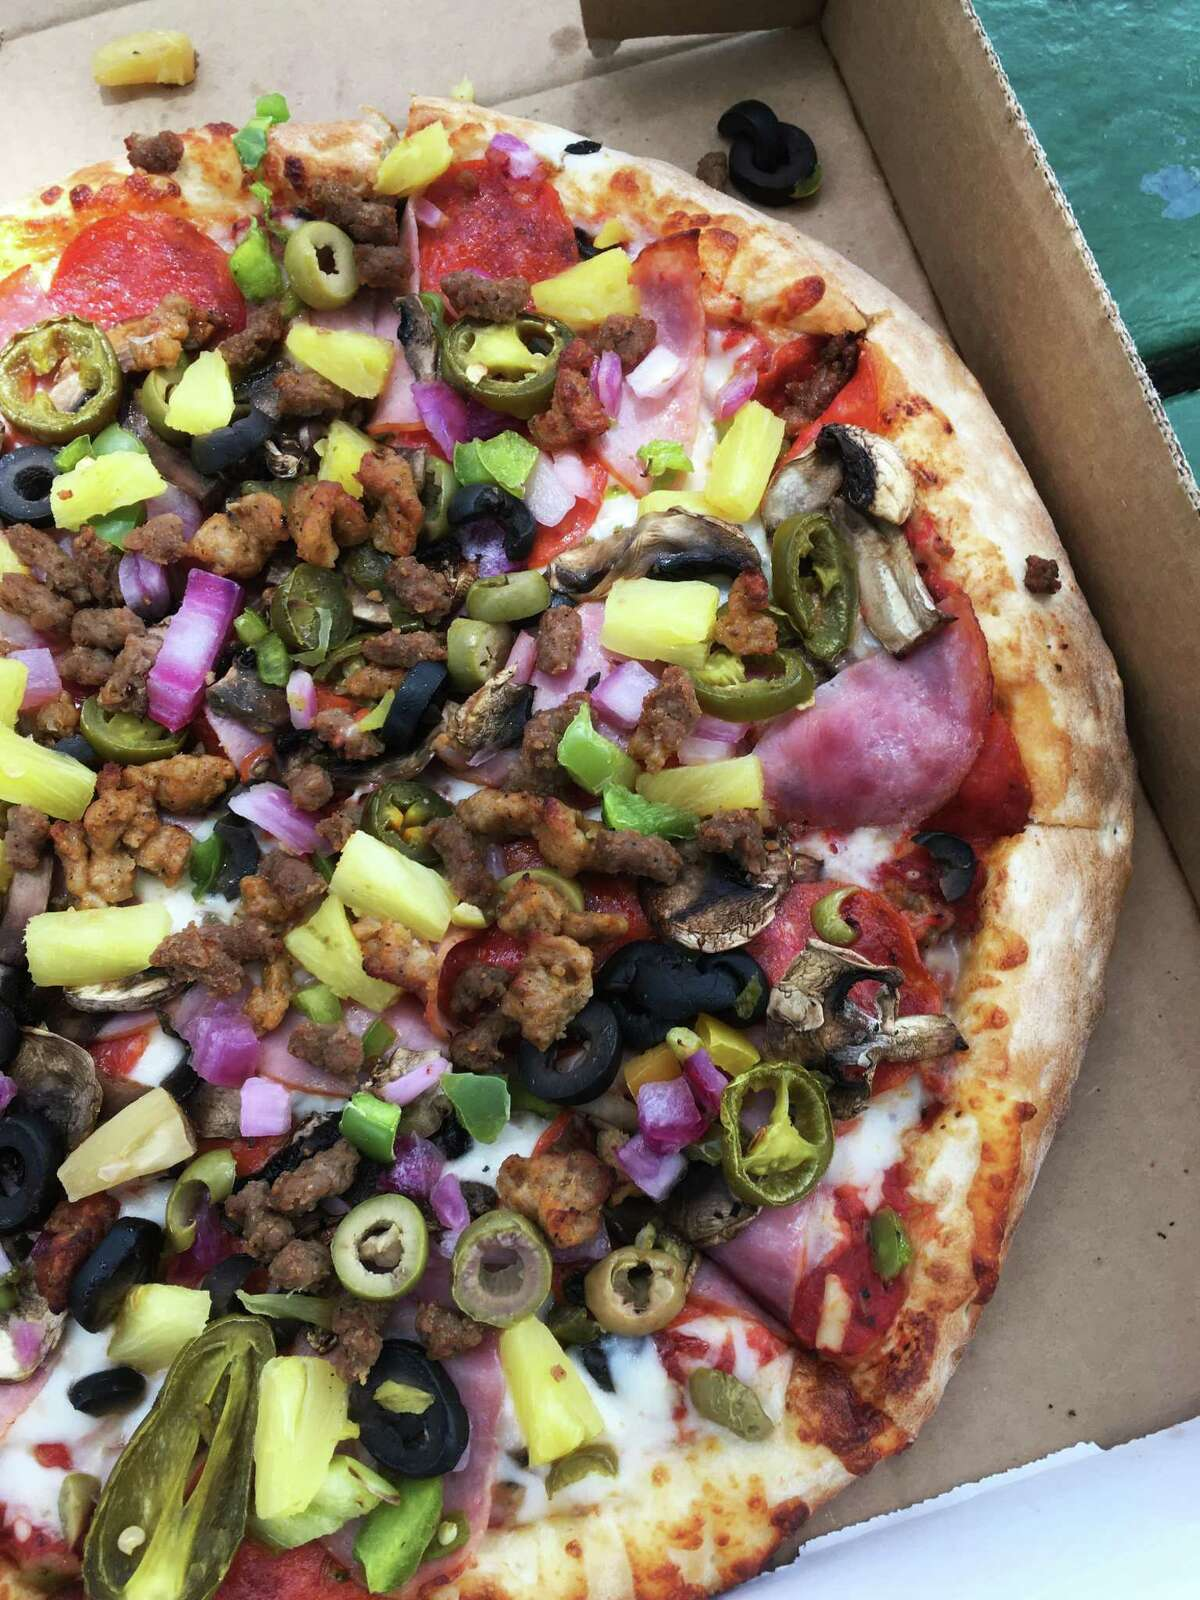 The Everything pizza at Pizza Classics has an enormous selection of toppings.